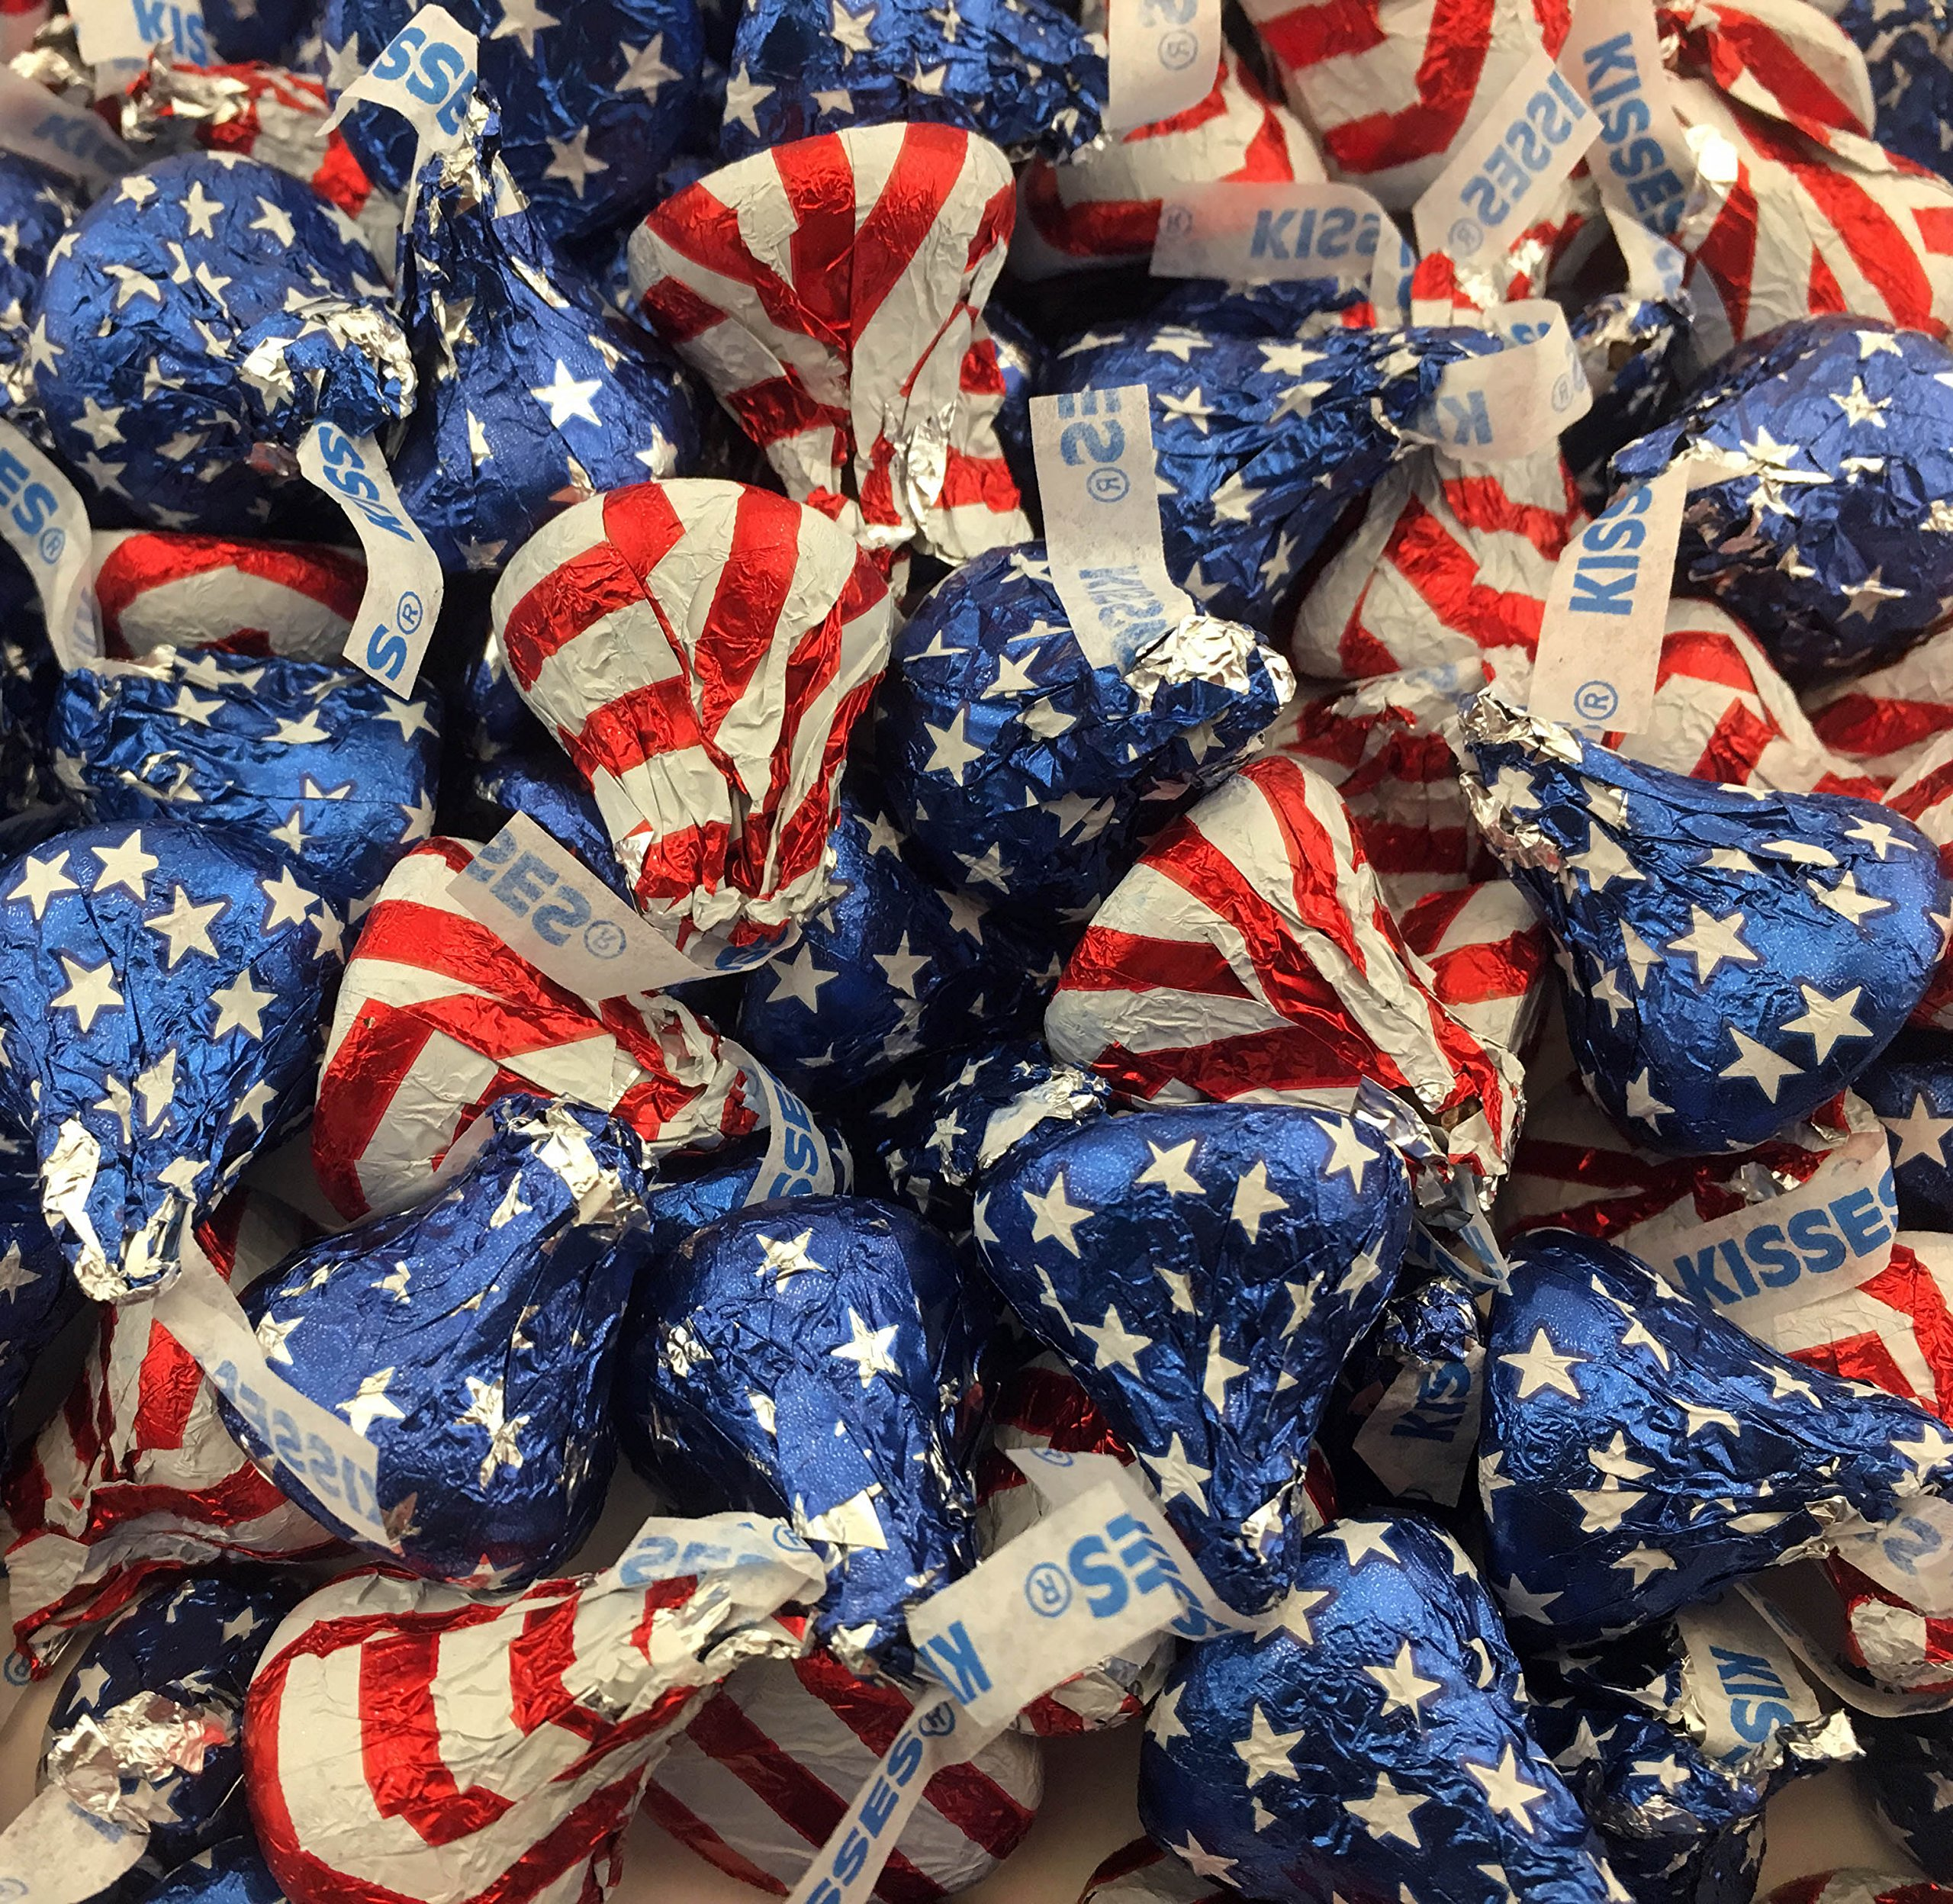 LaetaFood Bag - Hershey's Kisses, Milk Chocolate Kisses Red-White and Blue USA Flag, Presidents Day Candy (Pack of 2 Pound)